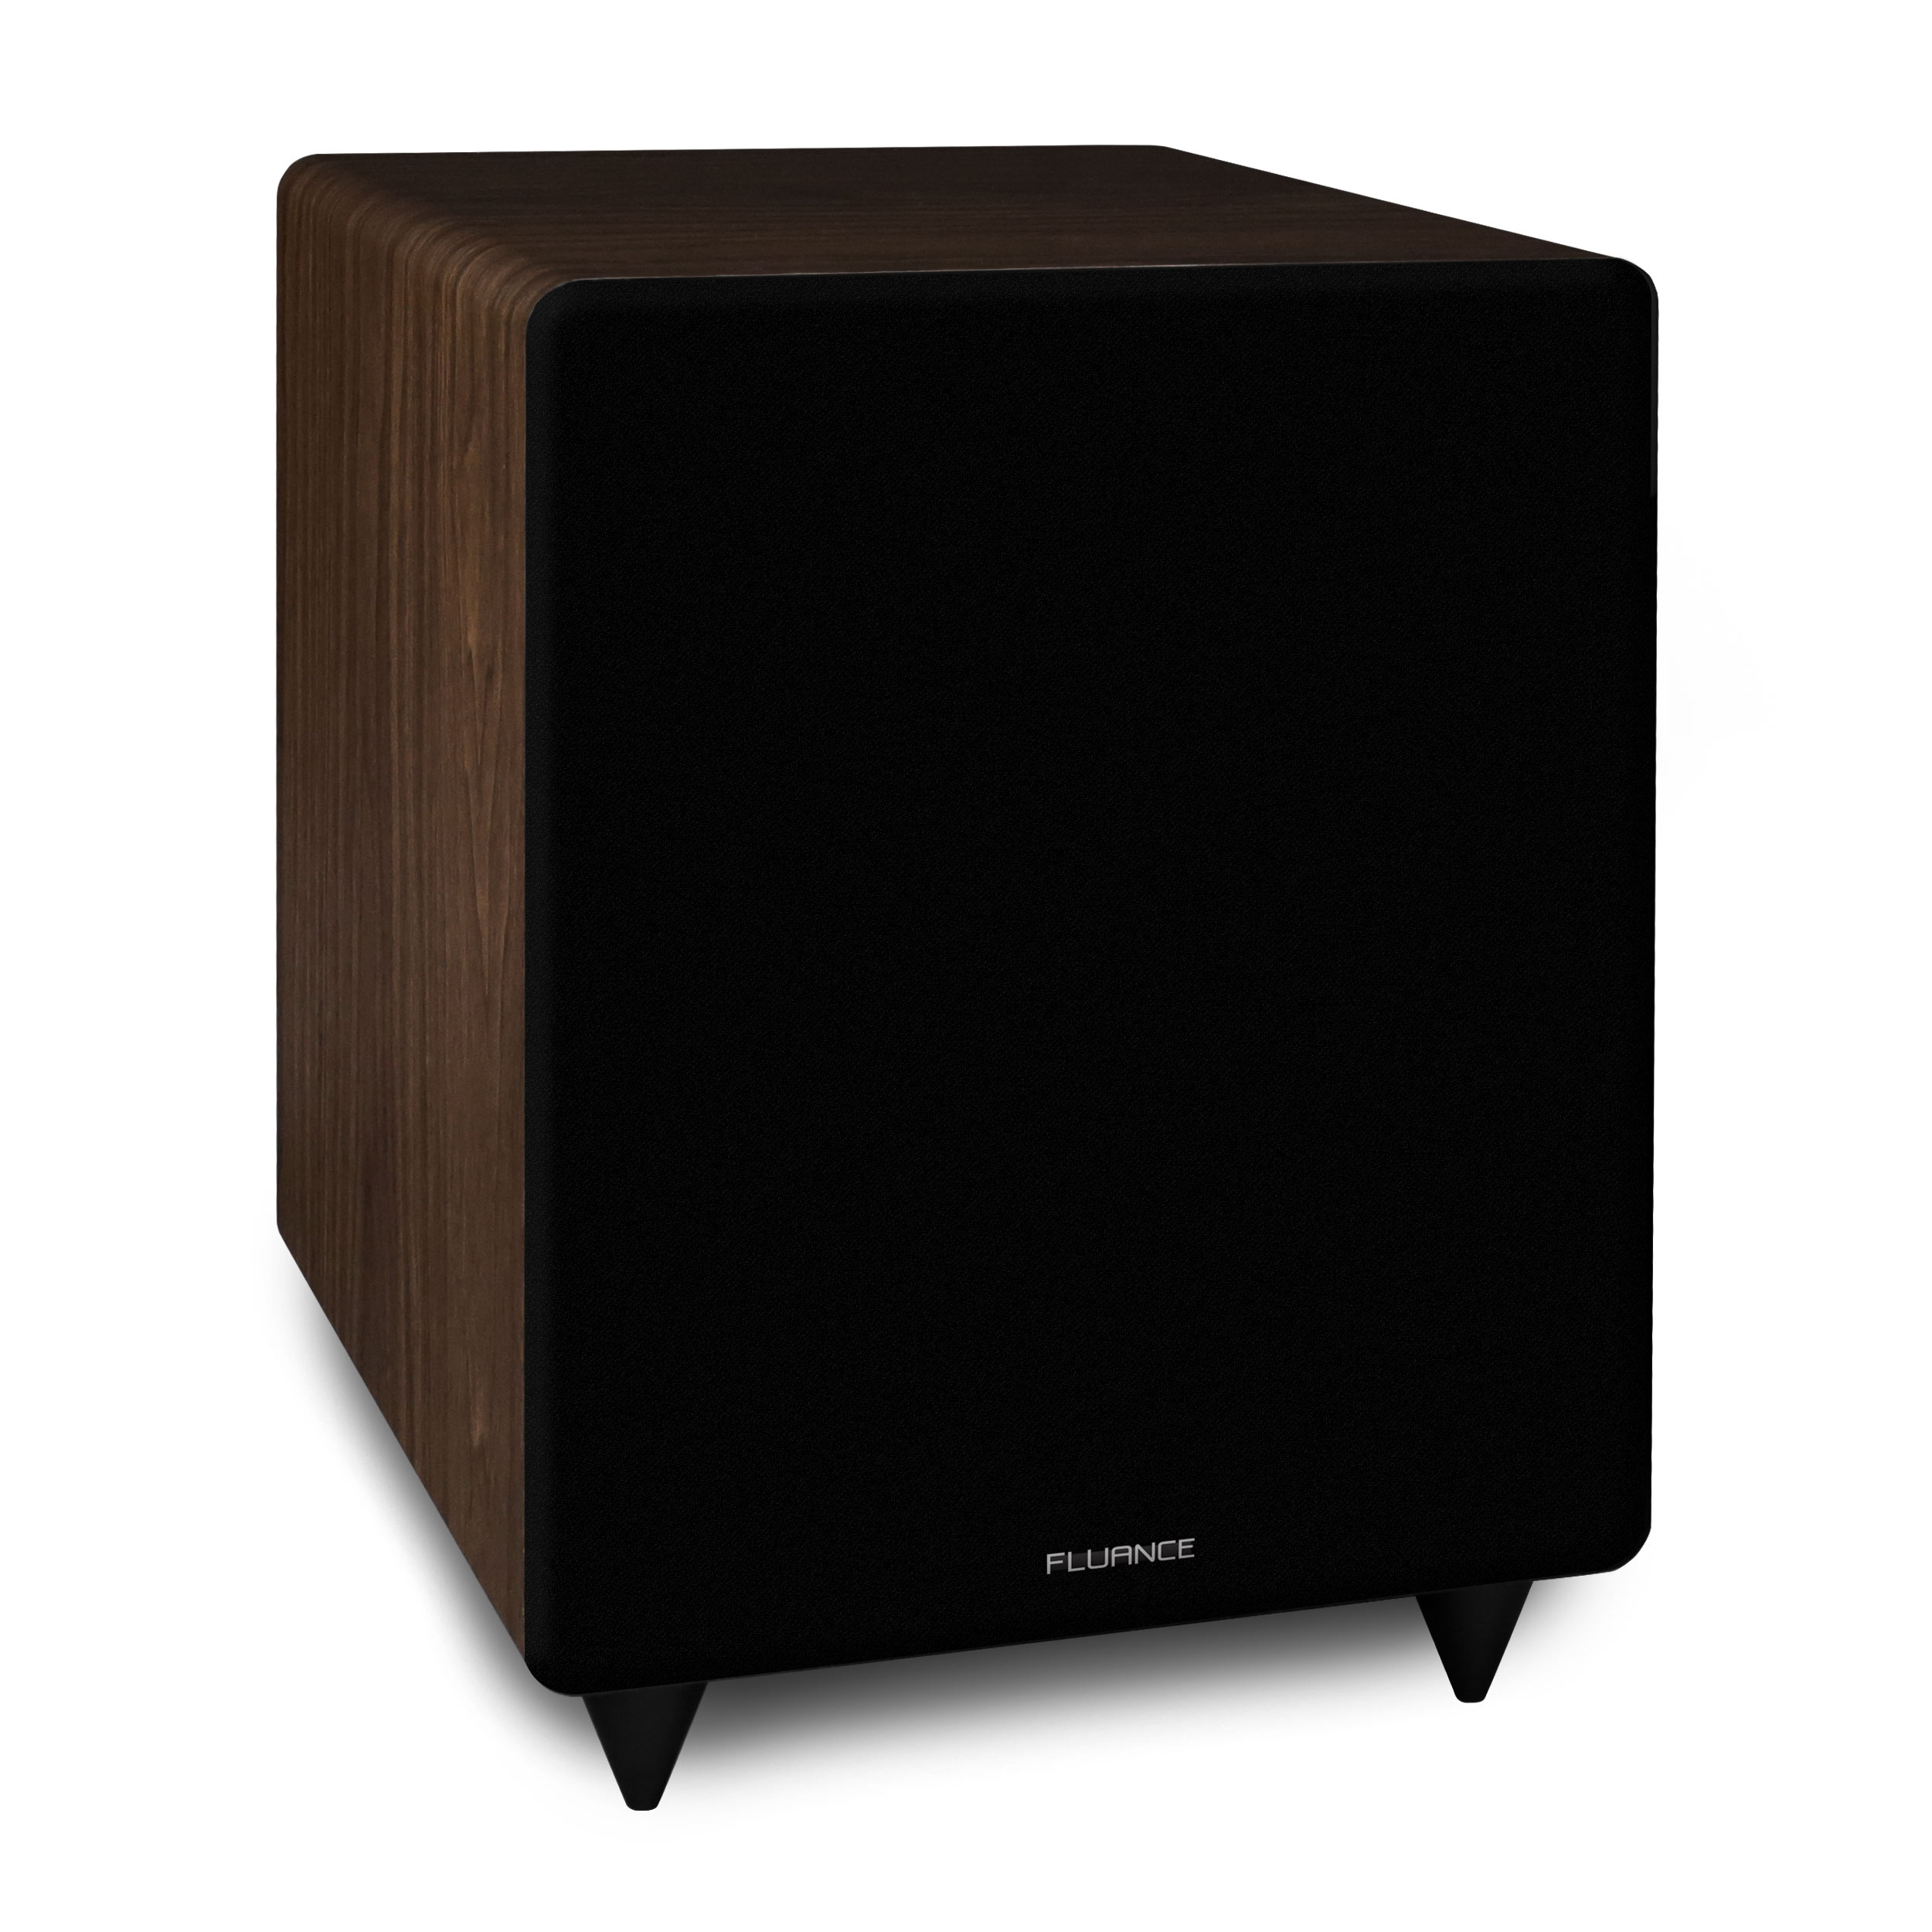 Fluance Elite Series Surround Sound Home Theater 5 1 Channel Speaker System Including Three Way Floorstanding Center Rear Speakers And A